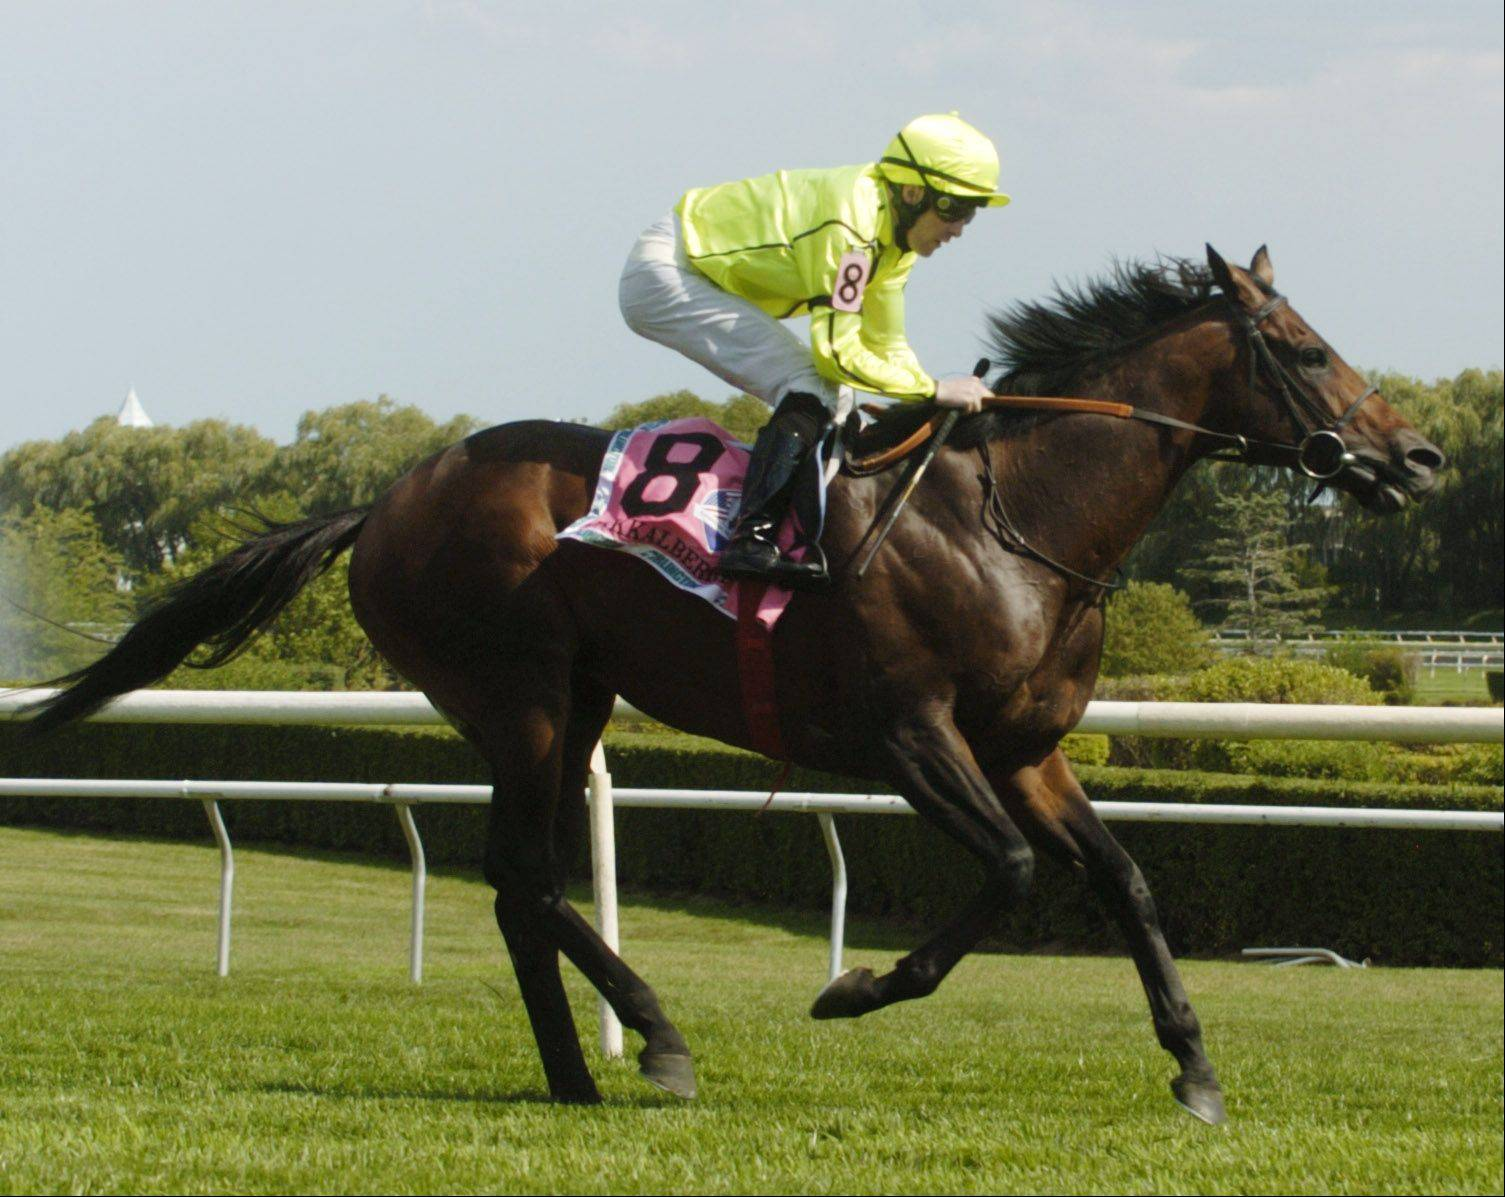 Jakkalberry, with jockey Colm O'Donoghue, is the winner of the St. Leger at Arlington Park on Saturday.